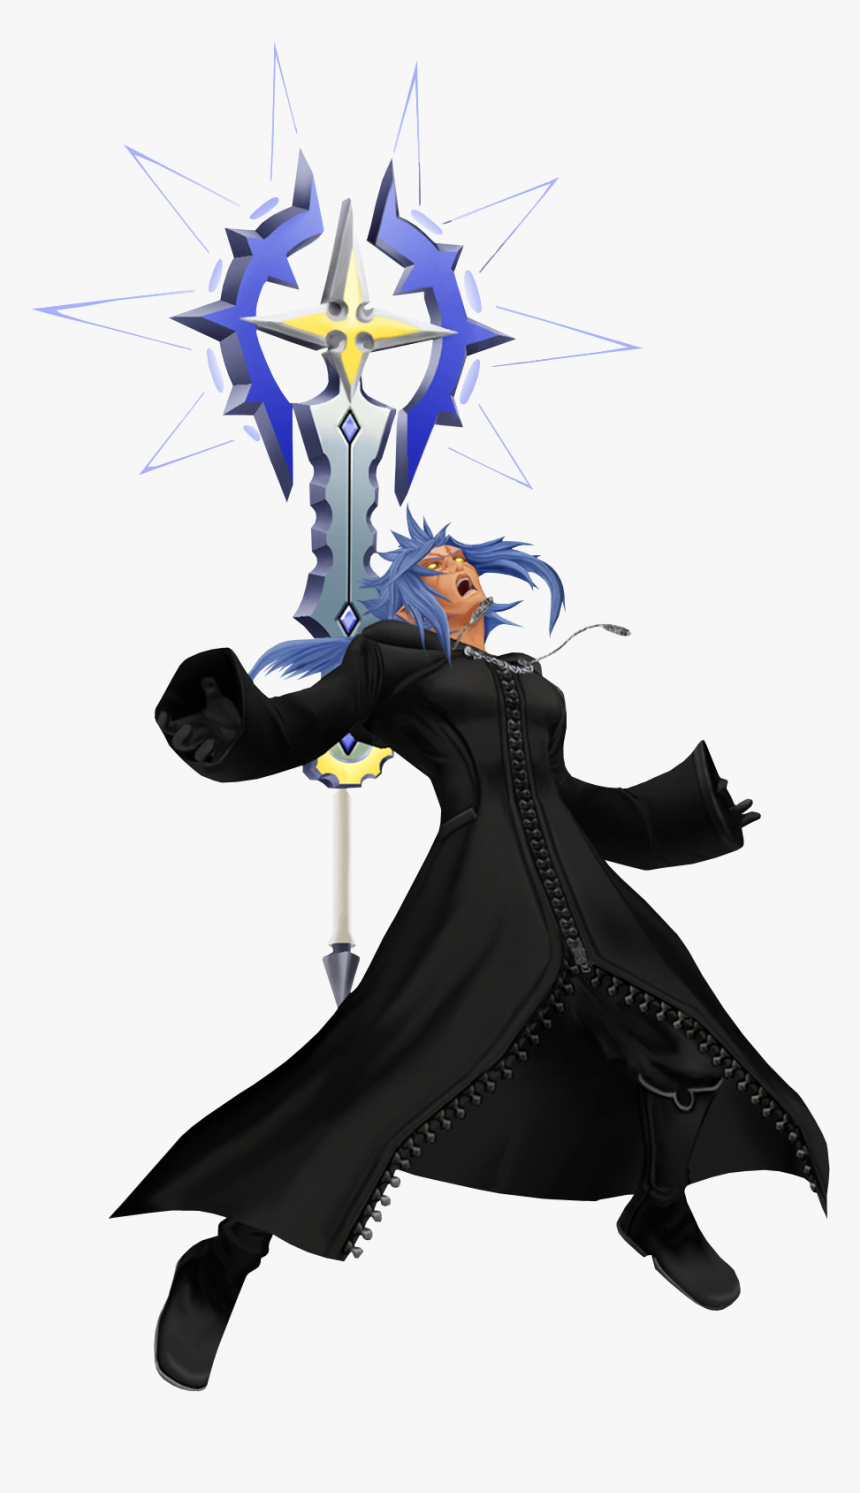 Kingdom Hearts Saix Berserk Hd Wallpaper Kingdom Hearts Saix